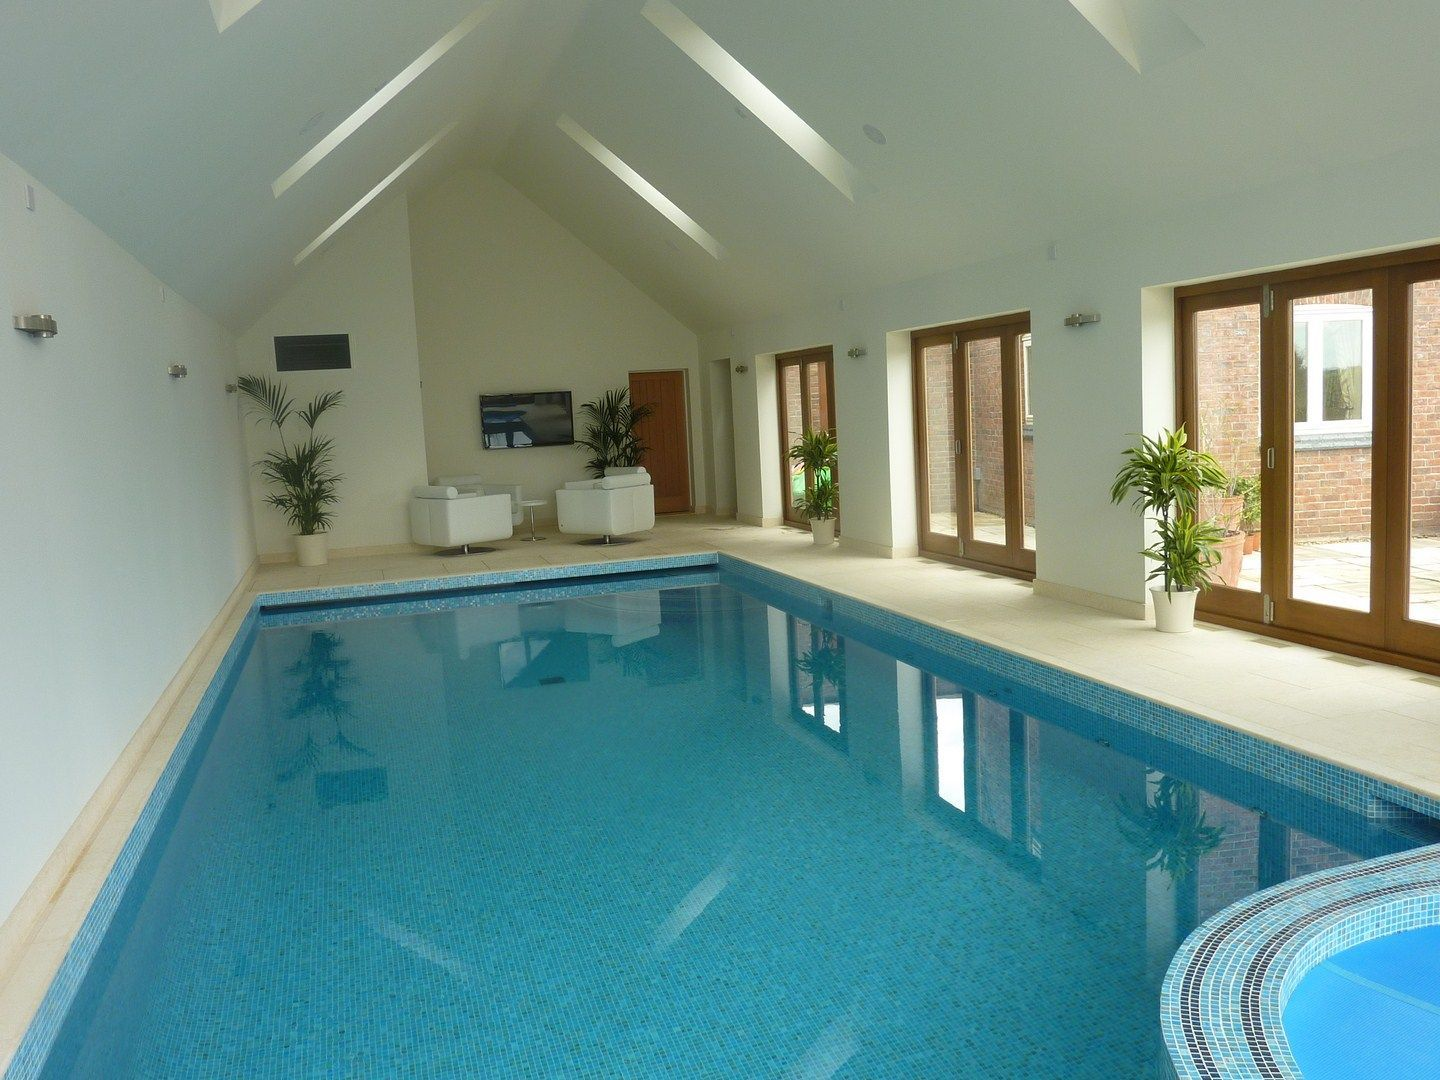 41+ Best Inspiration Window Indoor Swimming Pool Design Ideas with Pictures | Swimming pools backyard, Luxury swimming pools, Indoor swimming